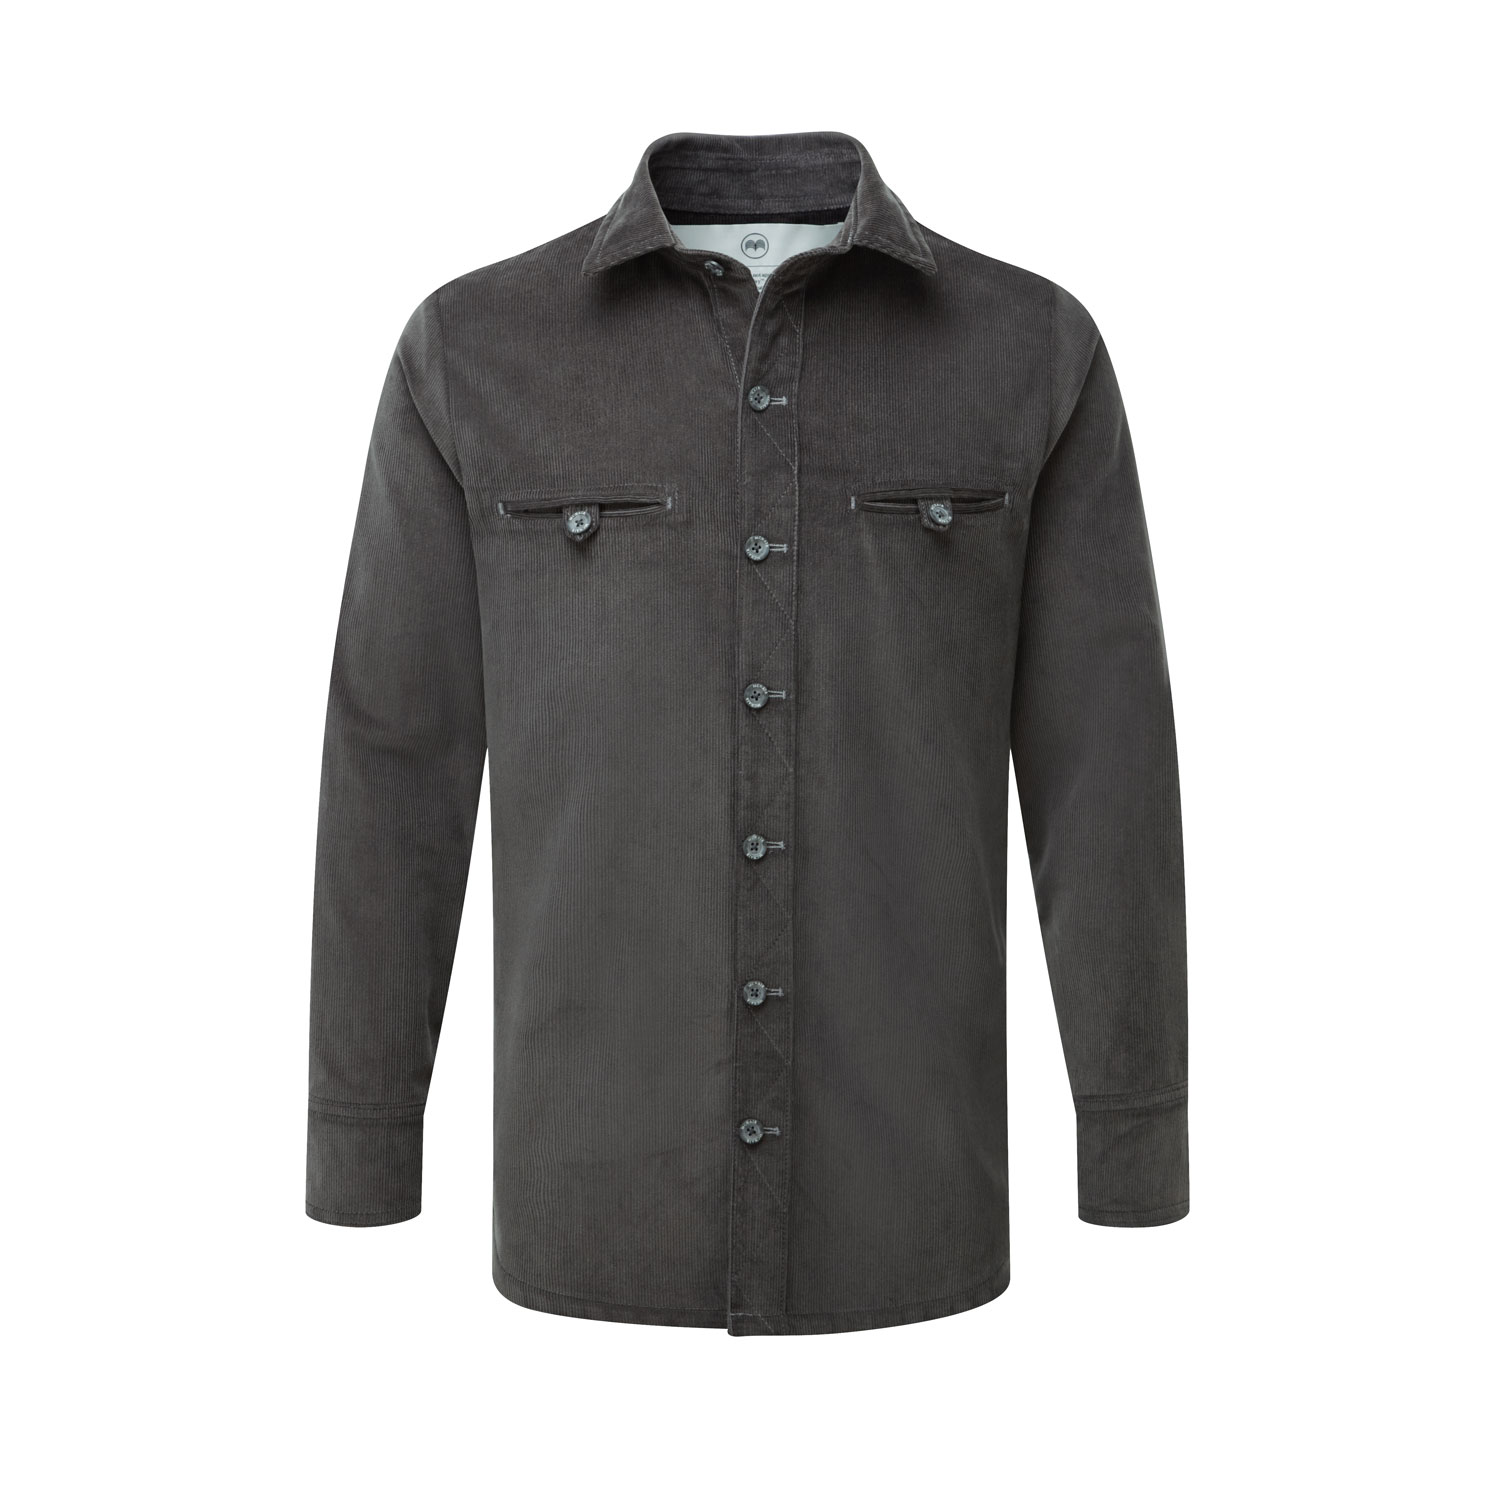 McNair Men's PlasmaDry shirt in slate grey